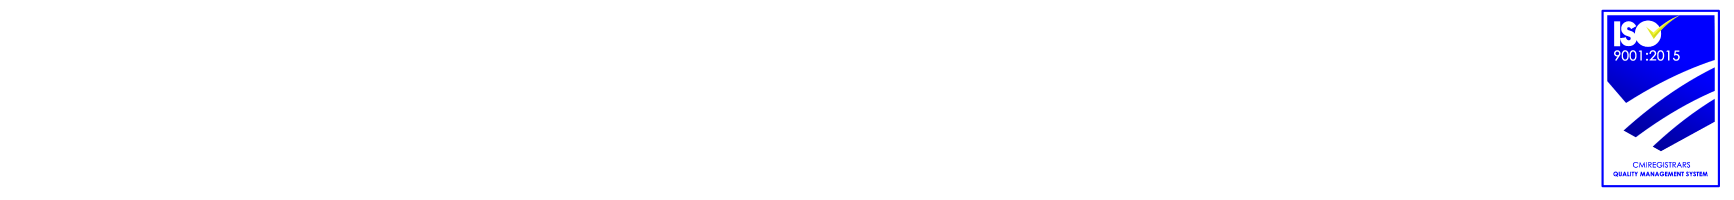 Indonesia Polyurethane Industry